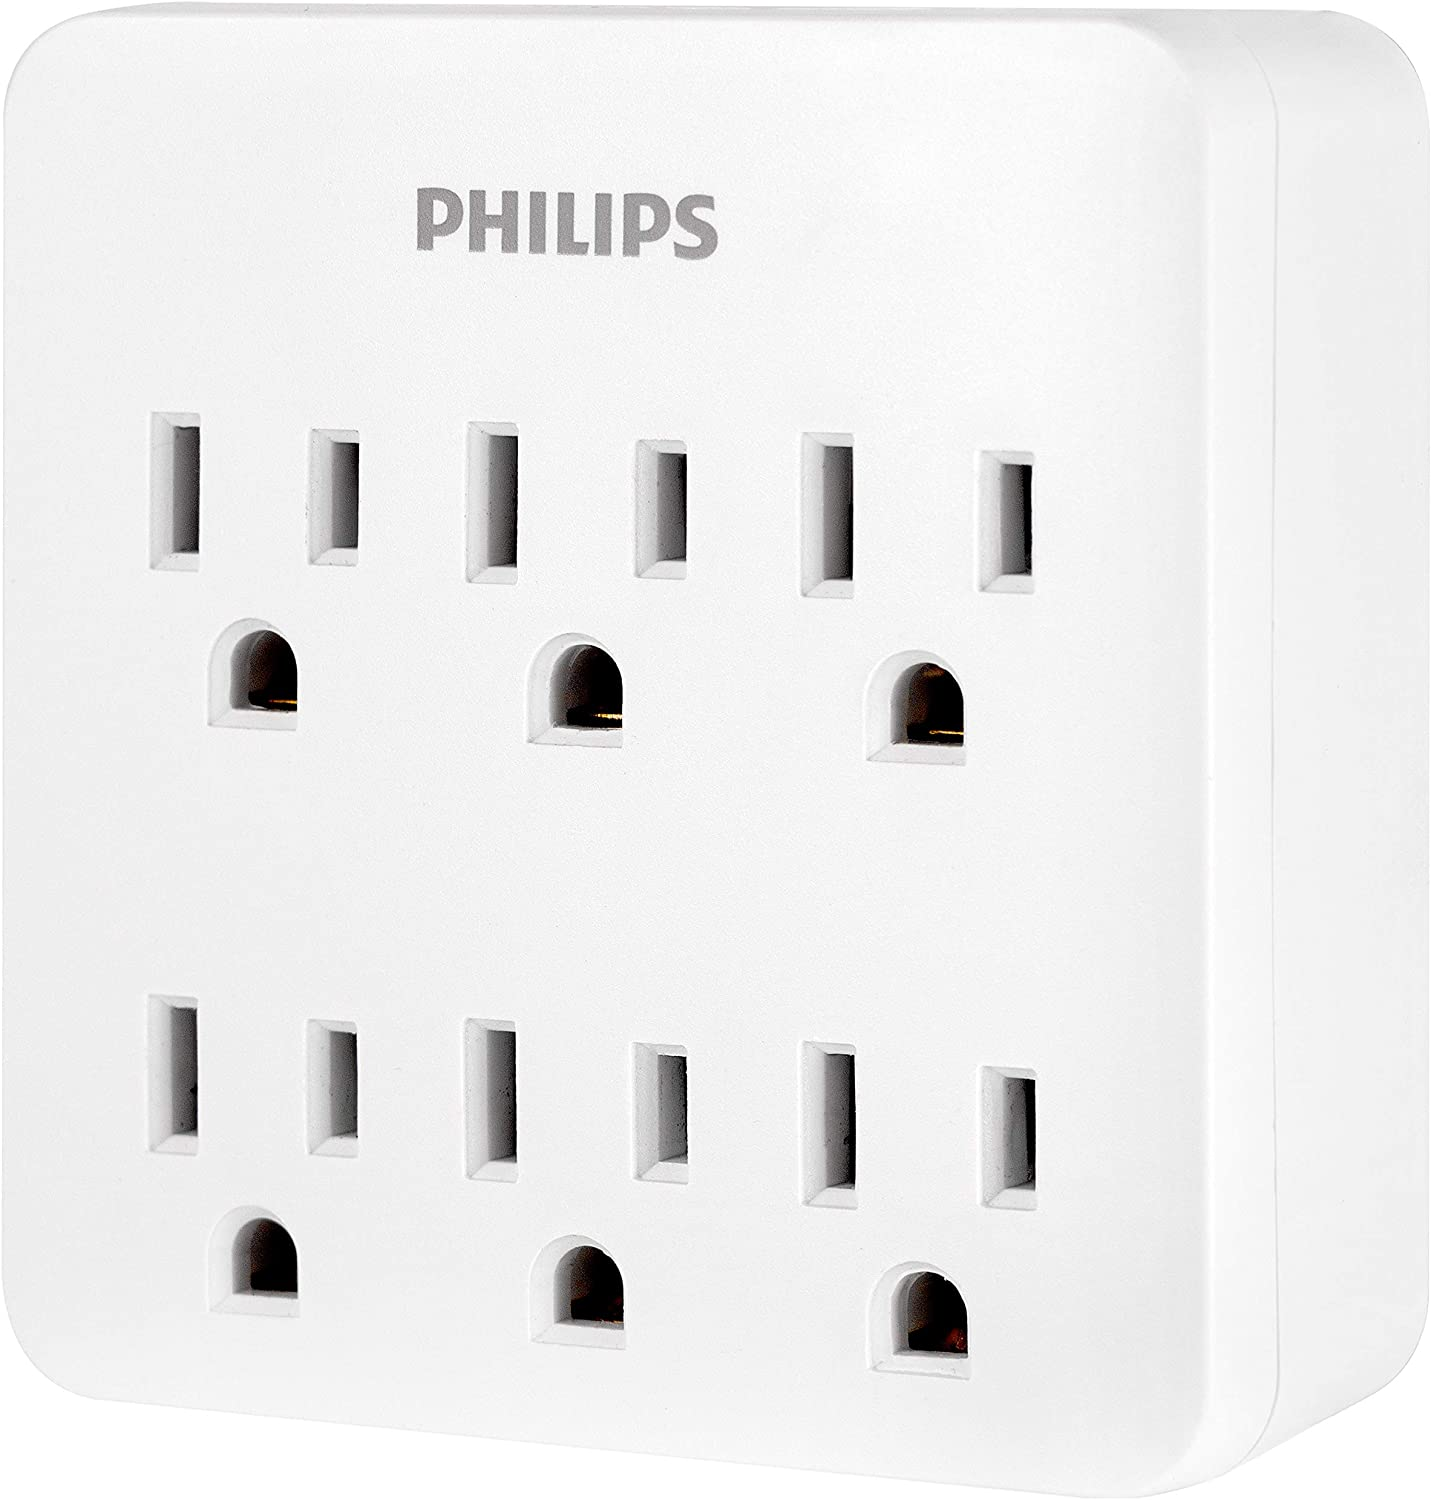 Philips 6-Outlet Surge Protector, 3-Prong Wall Adapter Plug, 1020J, White SPS1006WA/37